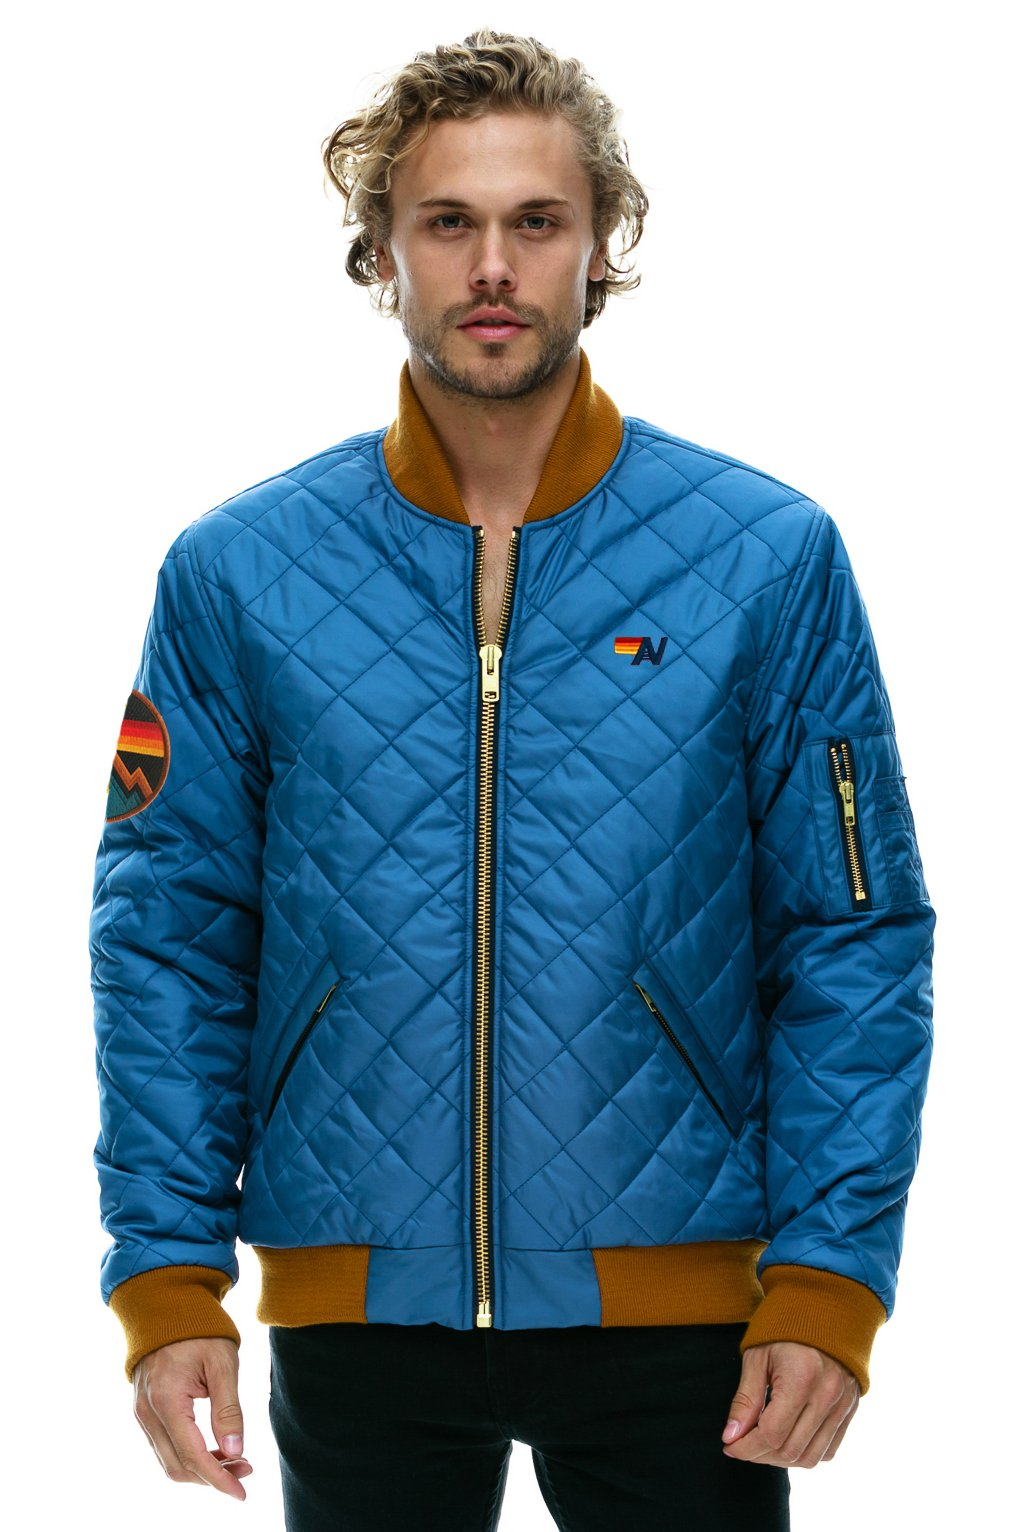 NEW! MACH 2 QUILTED BOMBER JACKET - VINTAGE BLUE - UNISEX